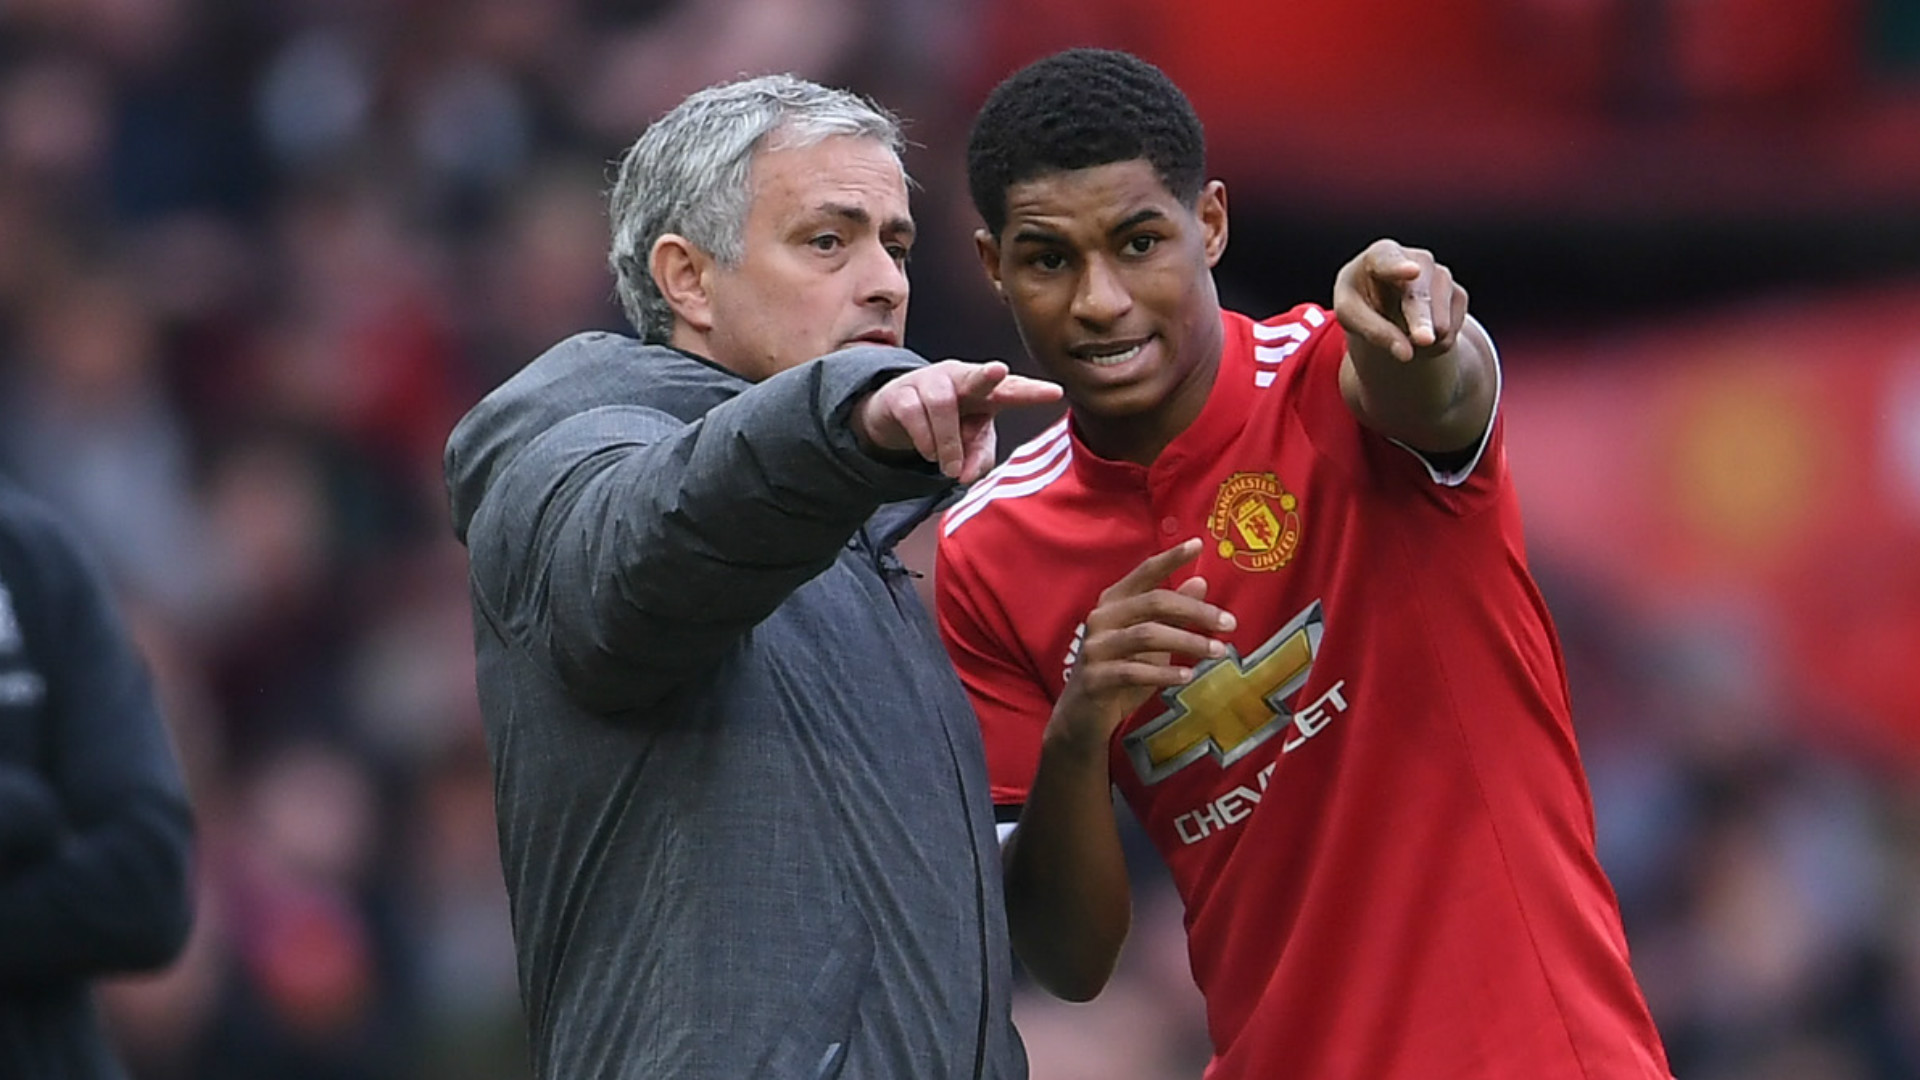 Man Utd attacker Rashford admits he can 'disappear as number nine'